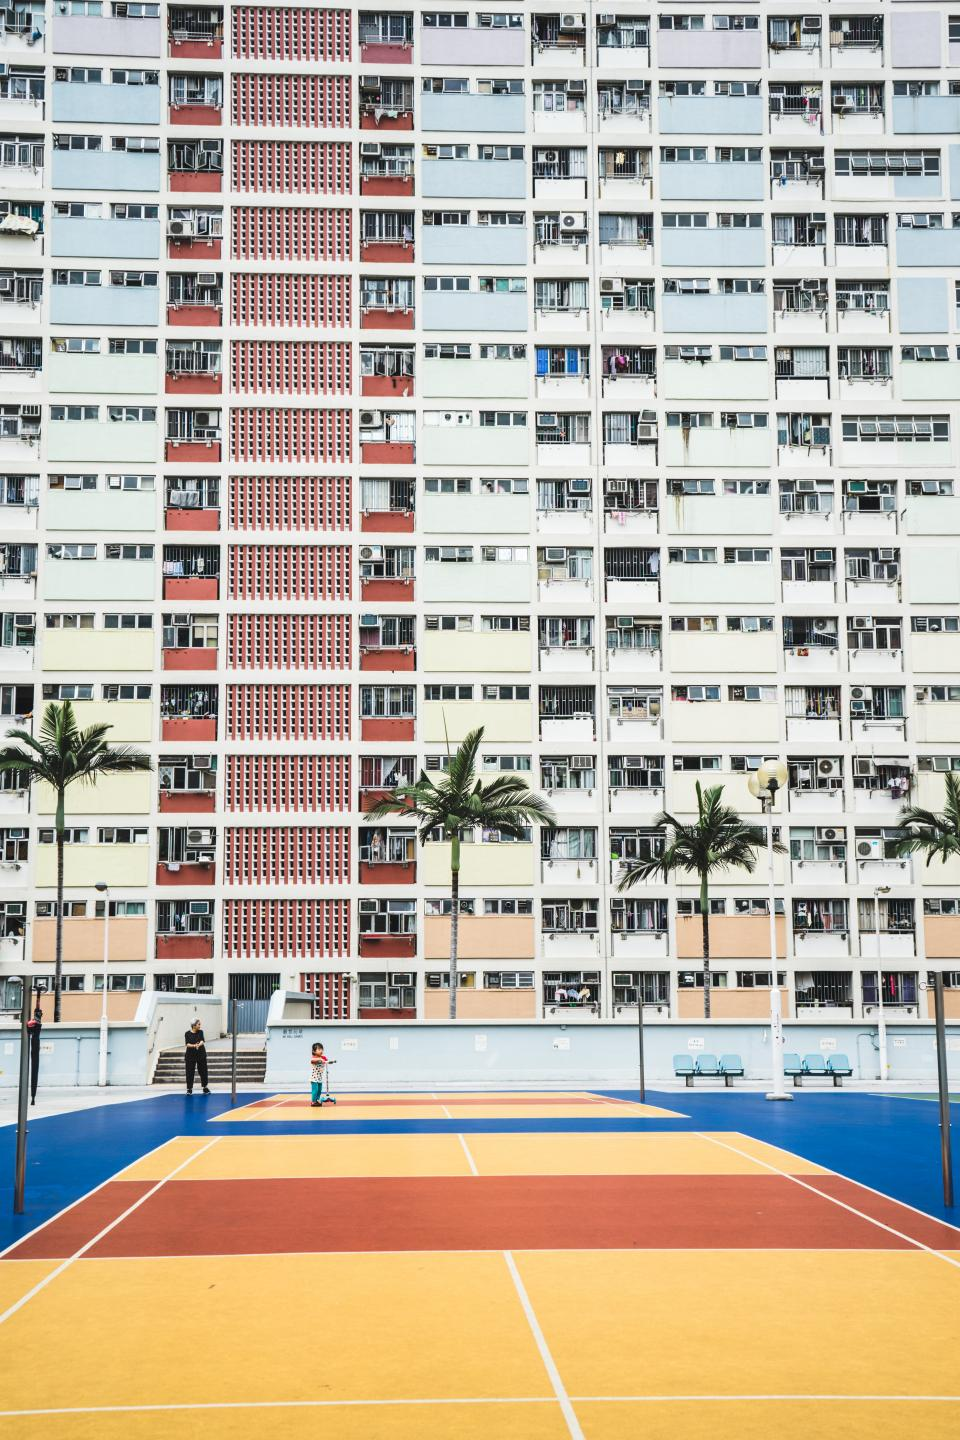 hotel building city urban guy player man basketball court ring coconut trees windows panes chair